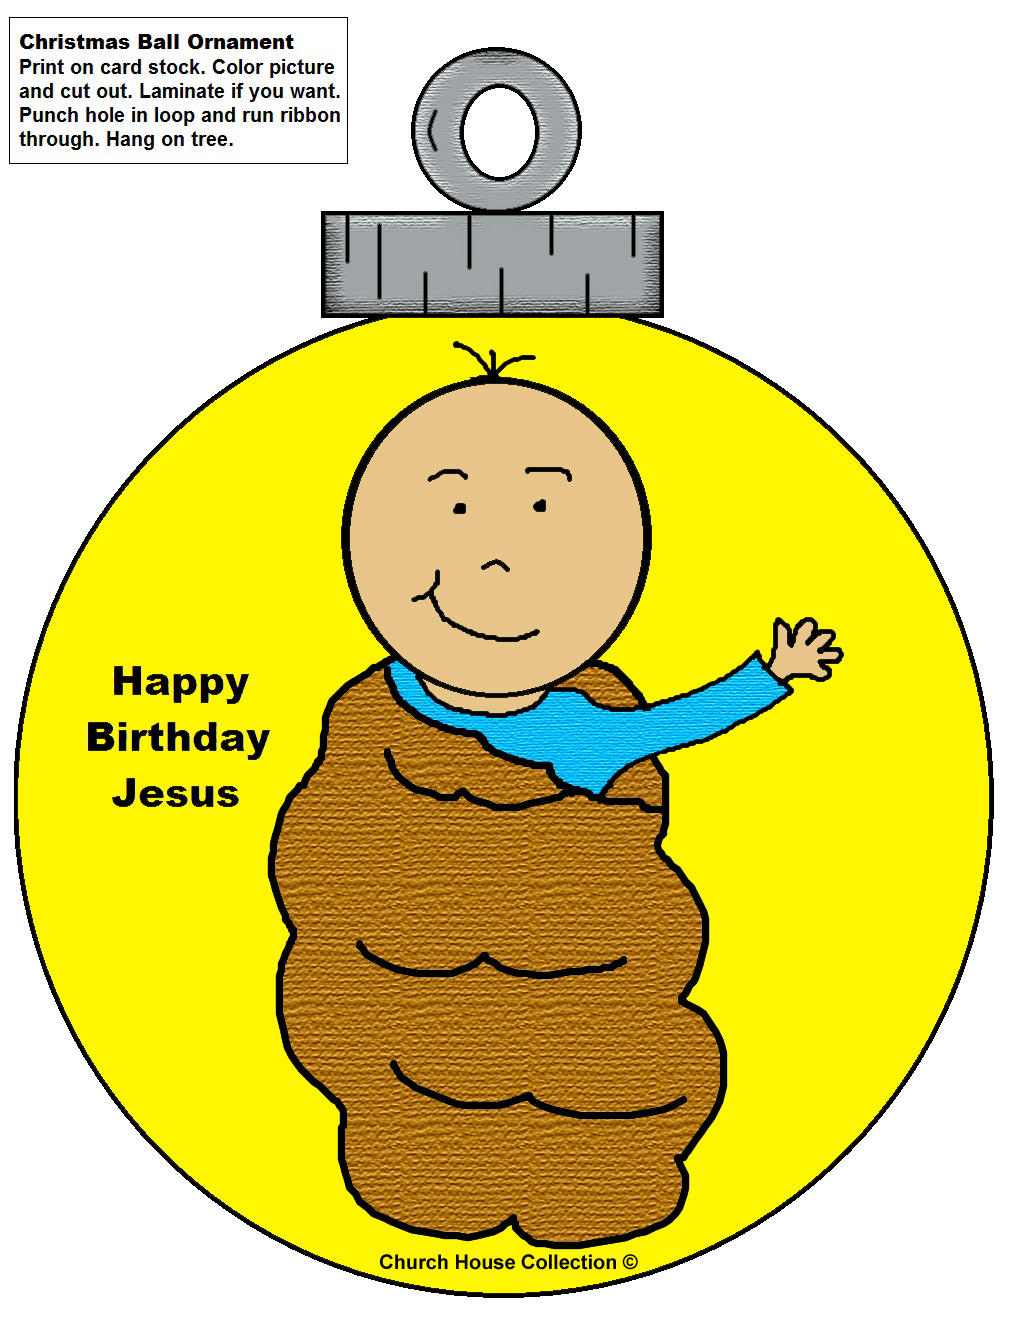 image about Printable Christmas Decorations Cutouts referred to as Little one Jesus Ornament Cutouts Craft